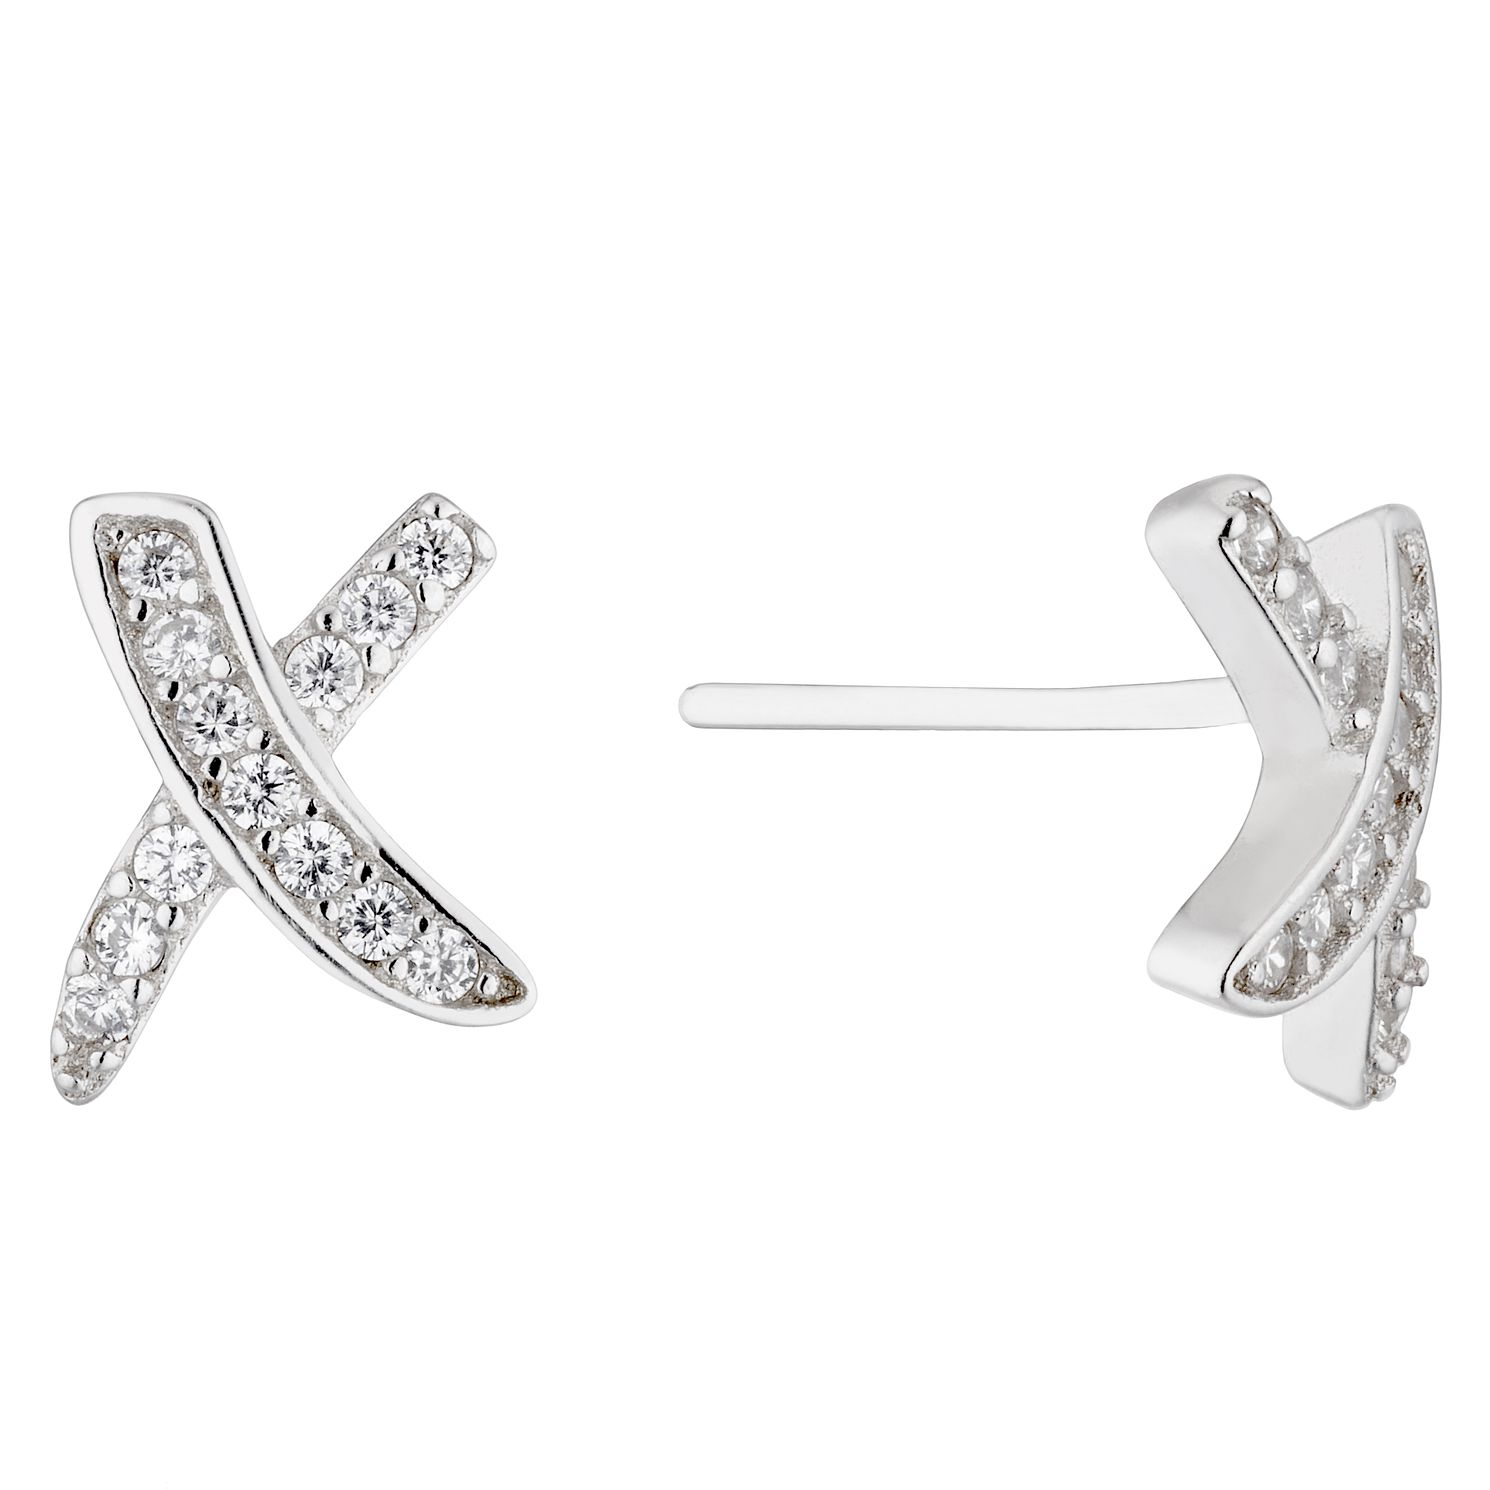 Silver Cubic Zirconia Kiss Stud Earrings - Product number 4827988